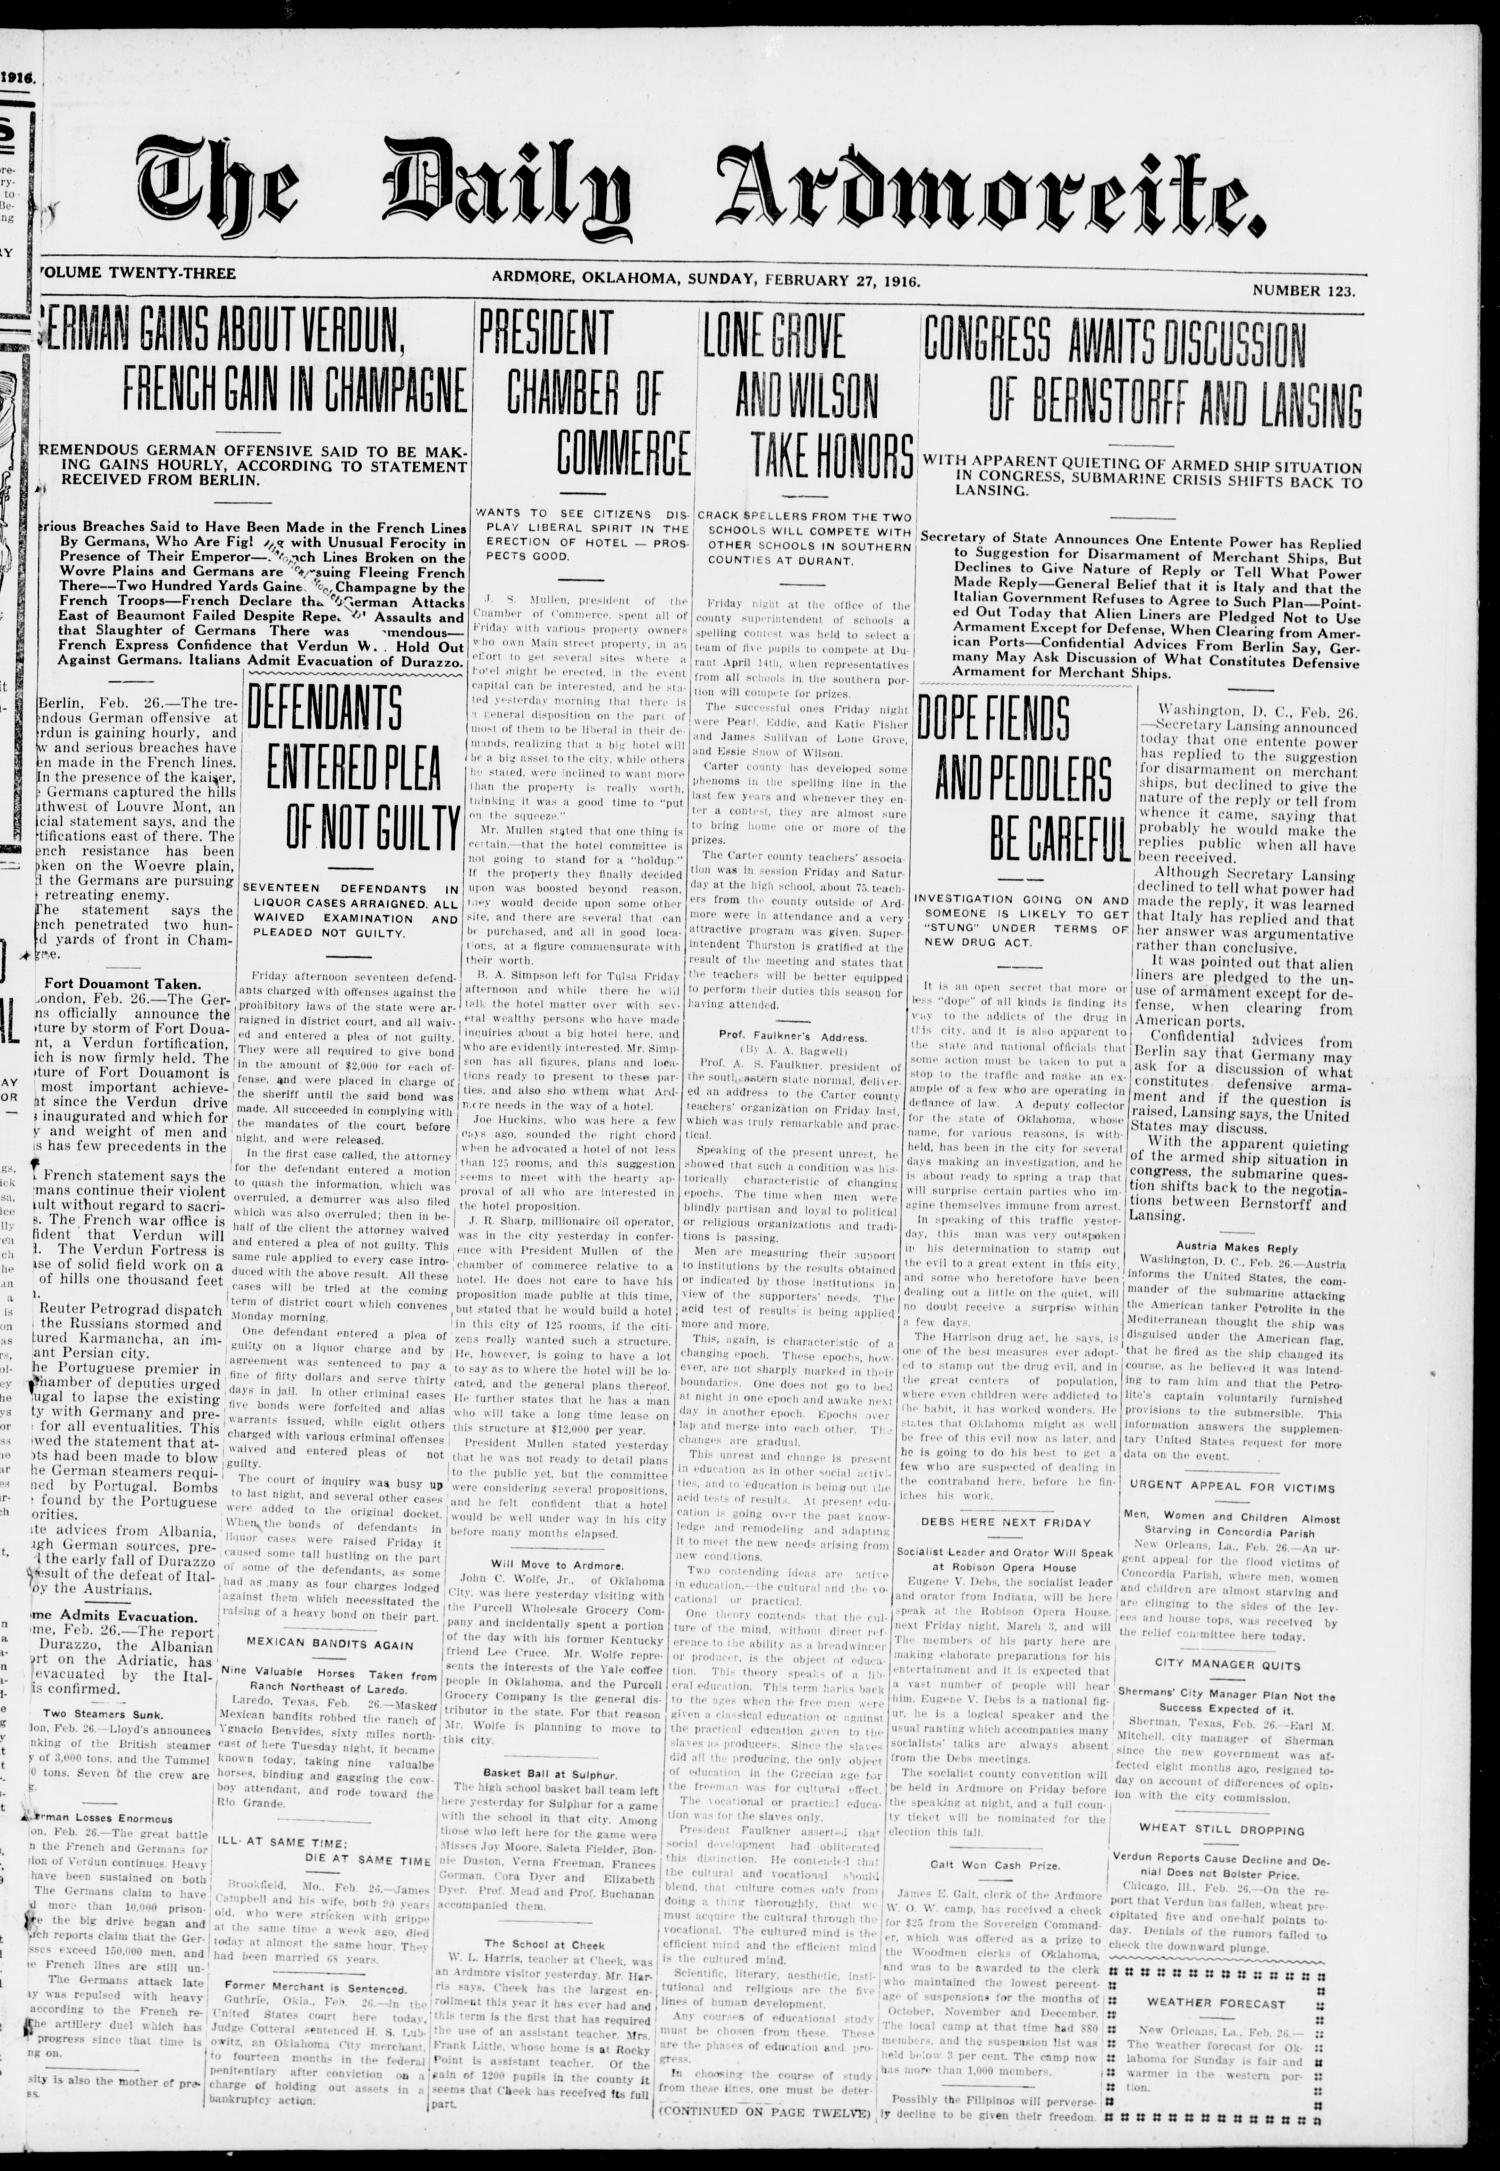 The Daily Ardmoreite. (Ardmore, Okla.), Vol. 23, No. 123, Ed. 1 Sunday, February 27, 1916                                                                                                      [Sequence #]: 1 of 12